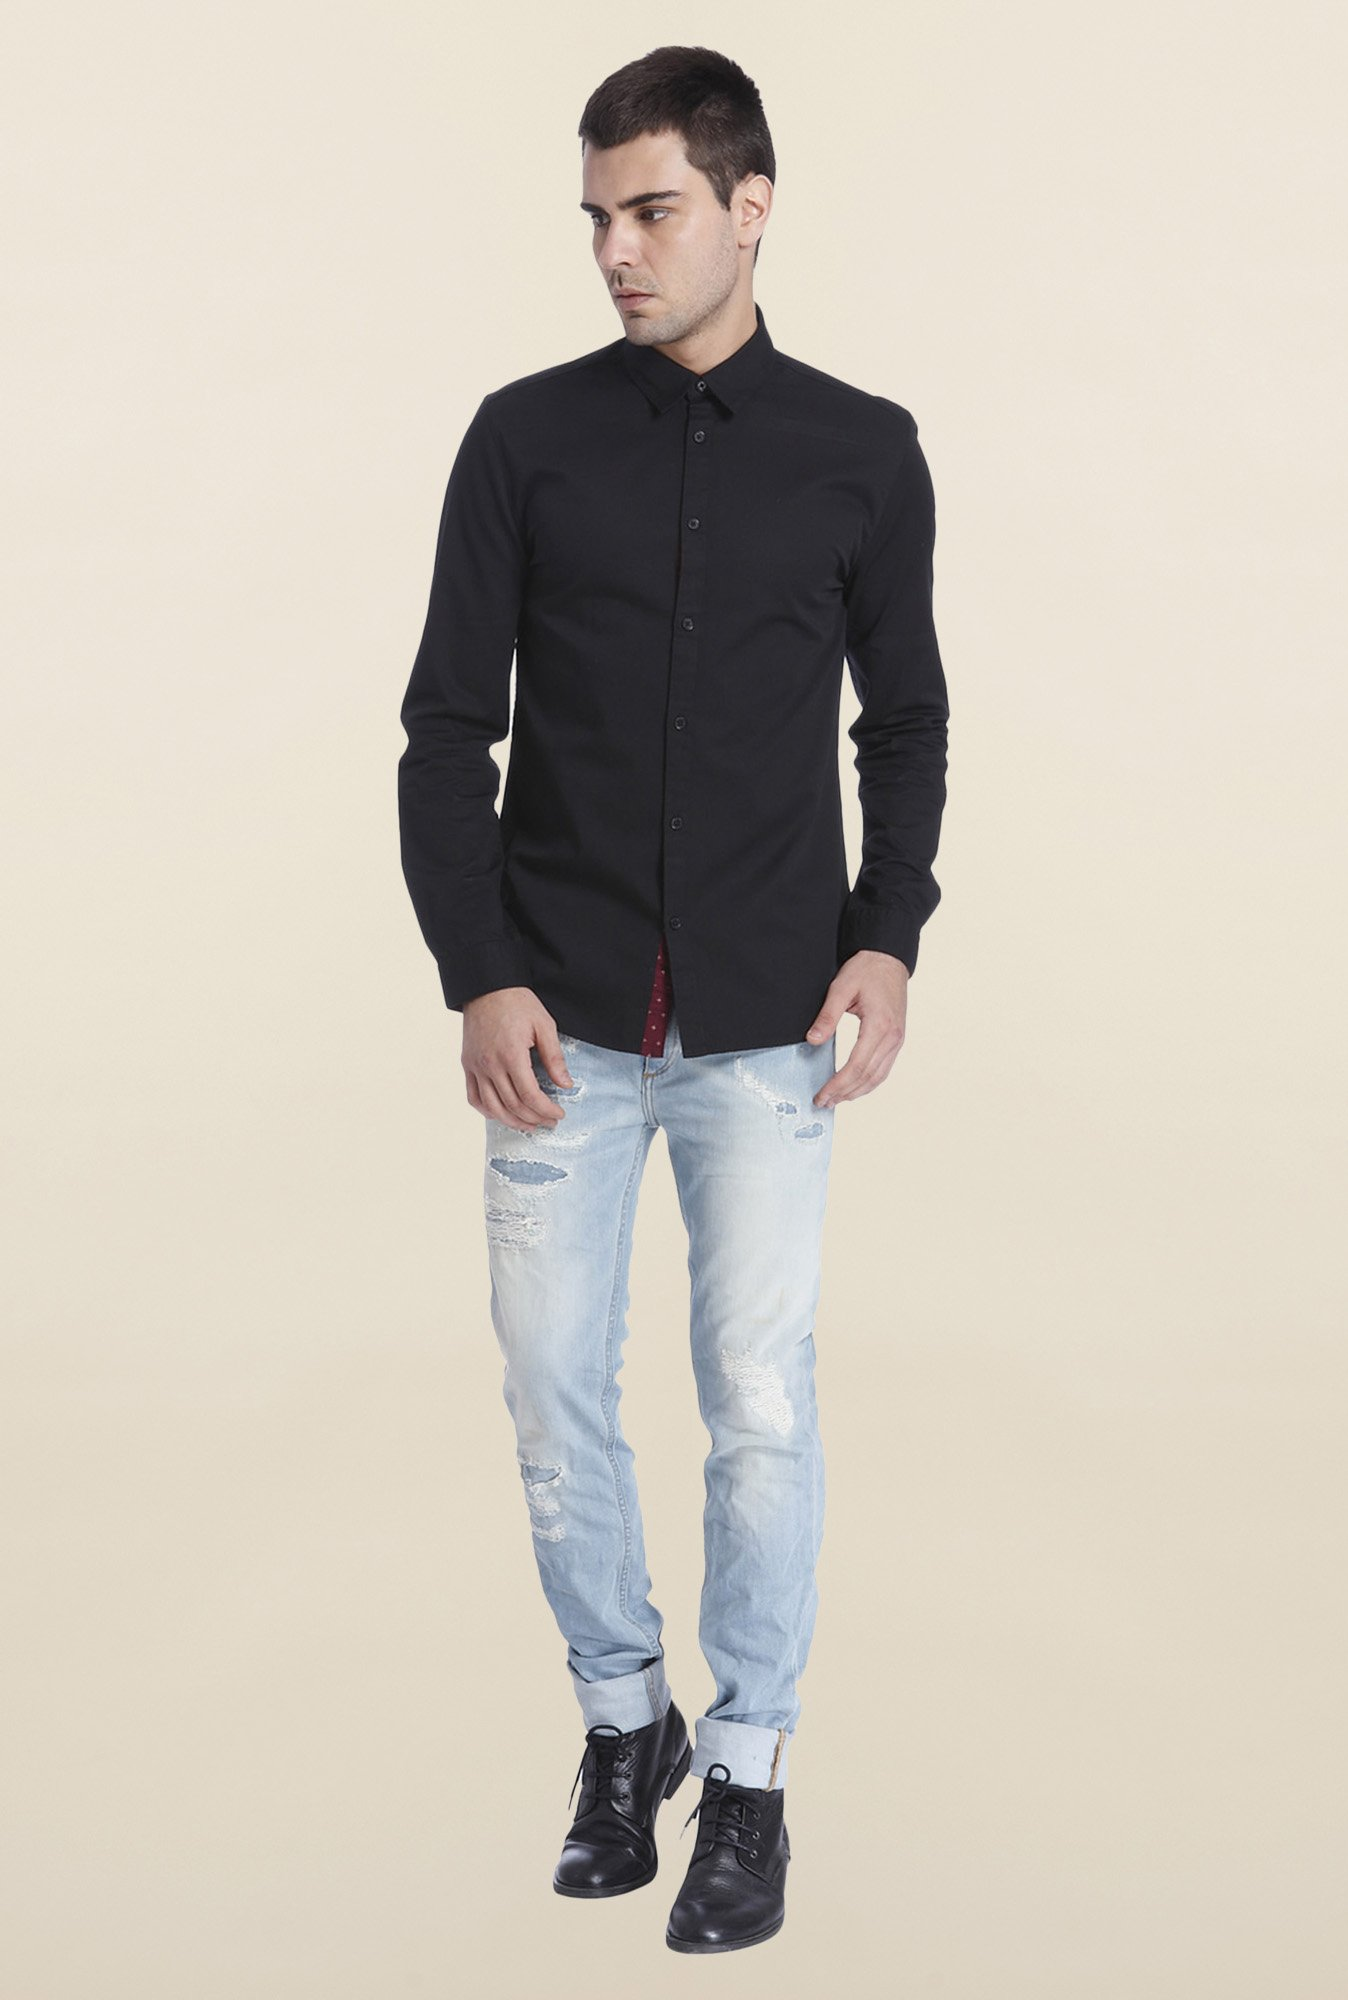 Jack & Jones Black Solid Cotton Shirt